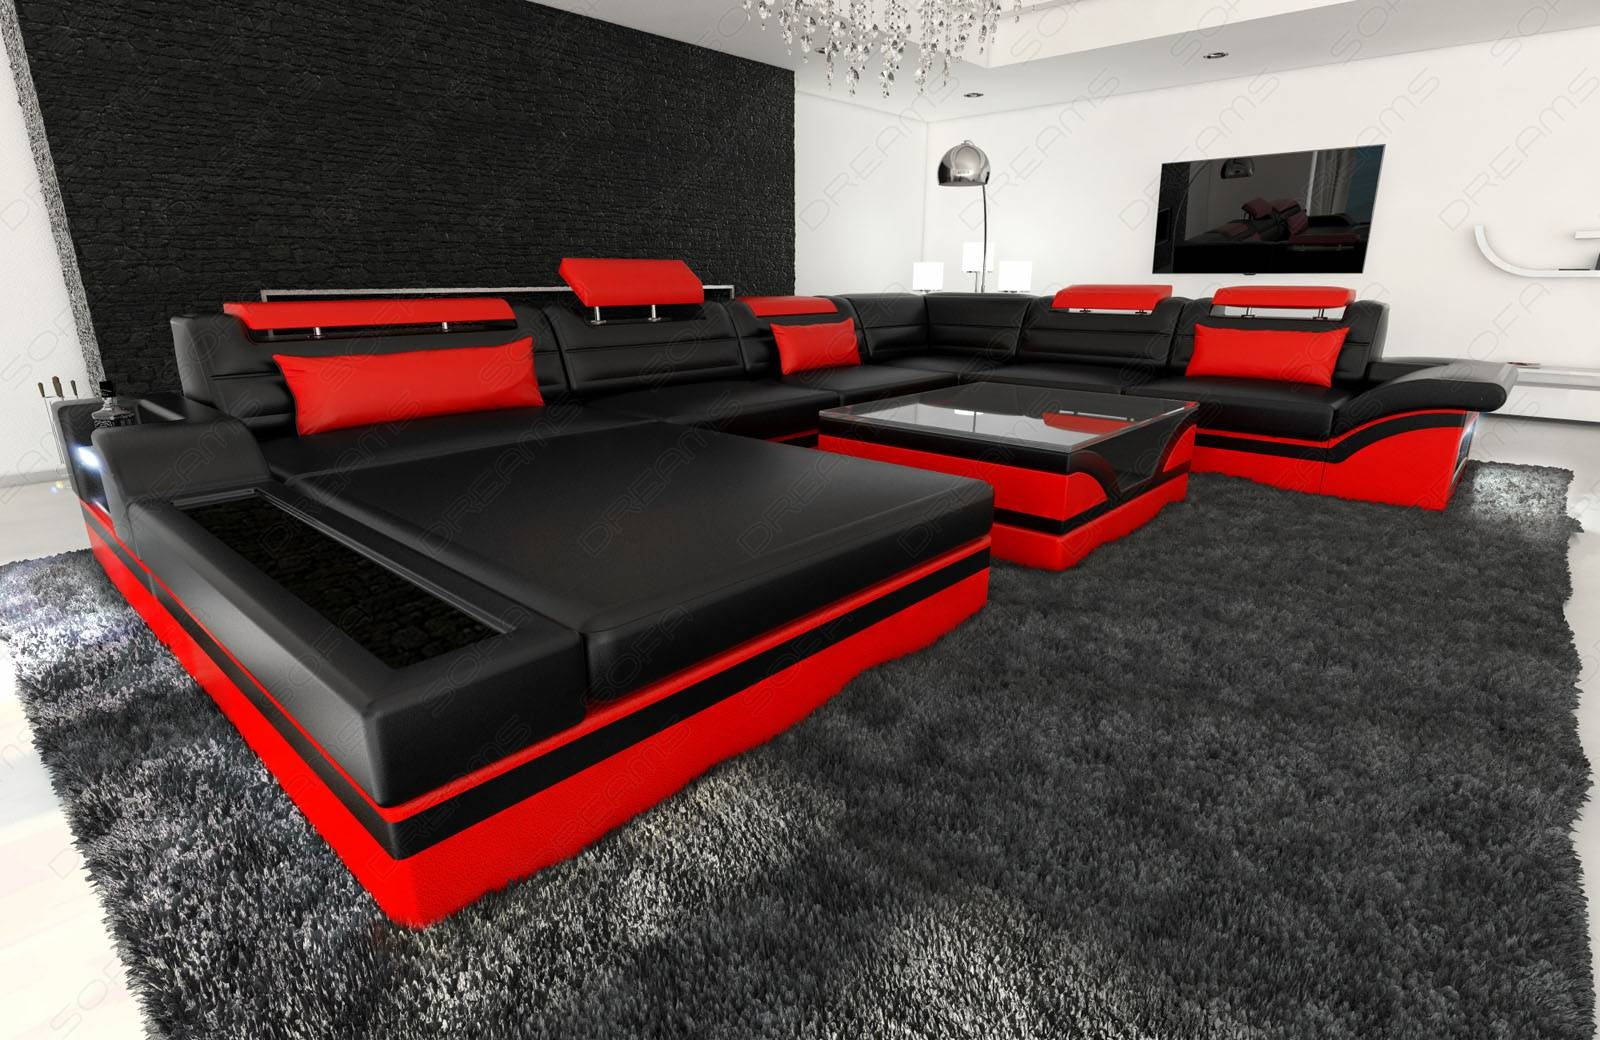 Design Sectional Sofa Mezzo Xxl With Led Lights Black Red | Ebay pertaining to Red Black Sectional Sofa (Image 9 of 30)